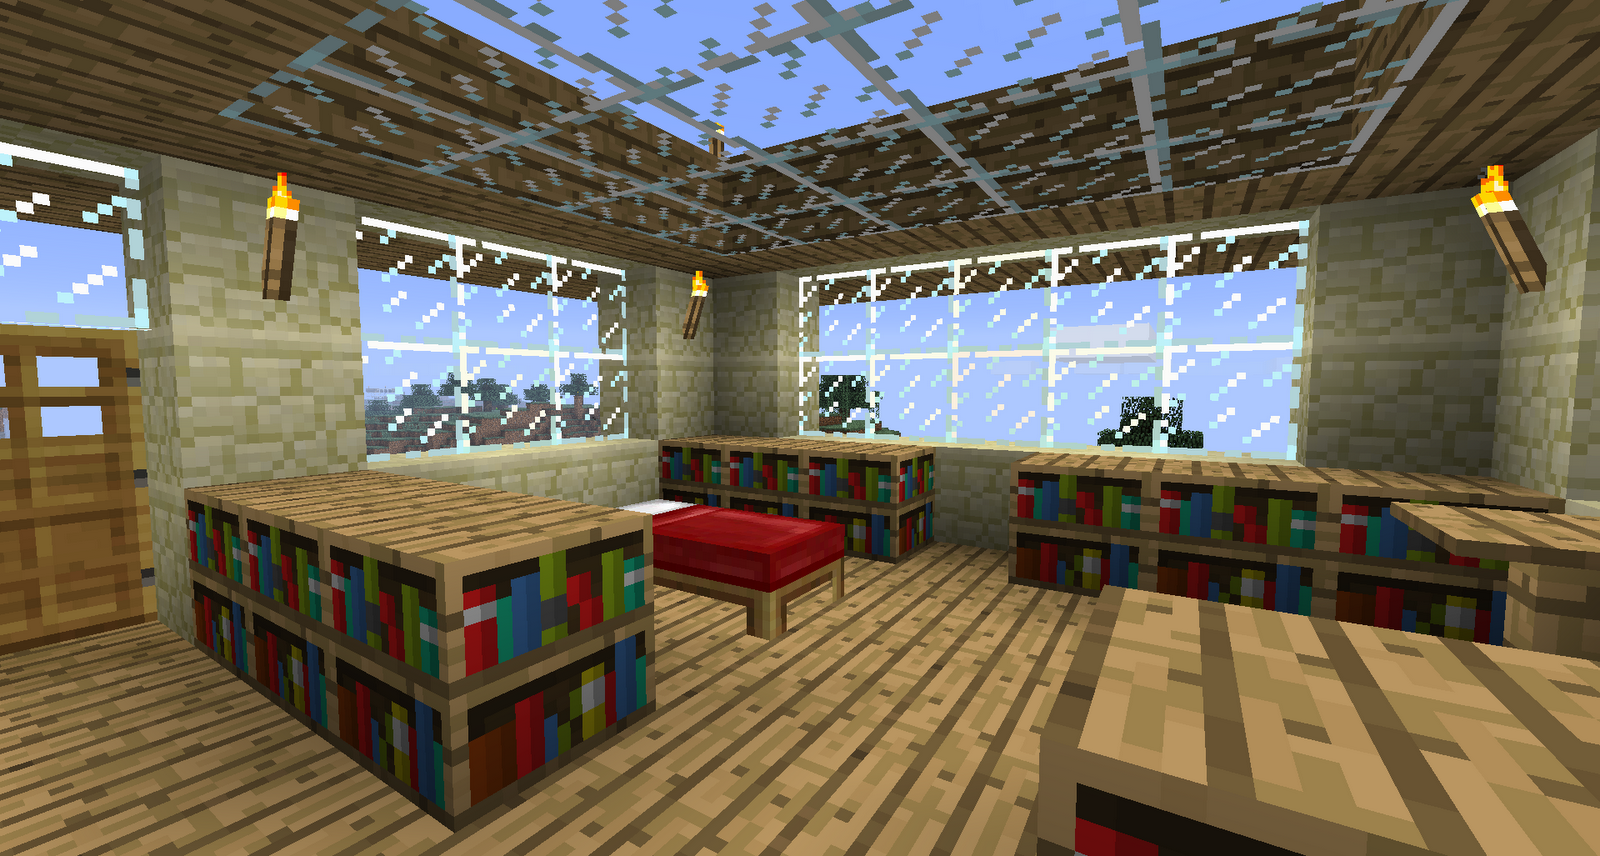 That's interesting...: Inside my Minecraft home